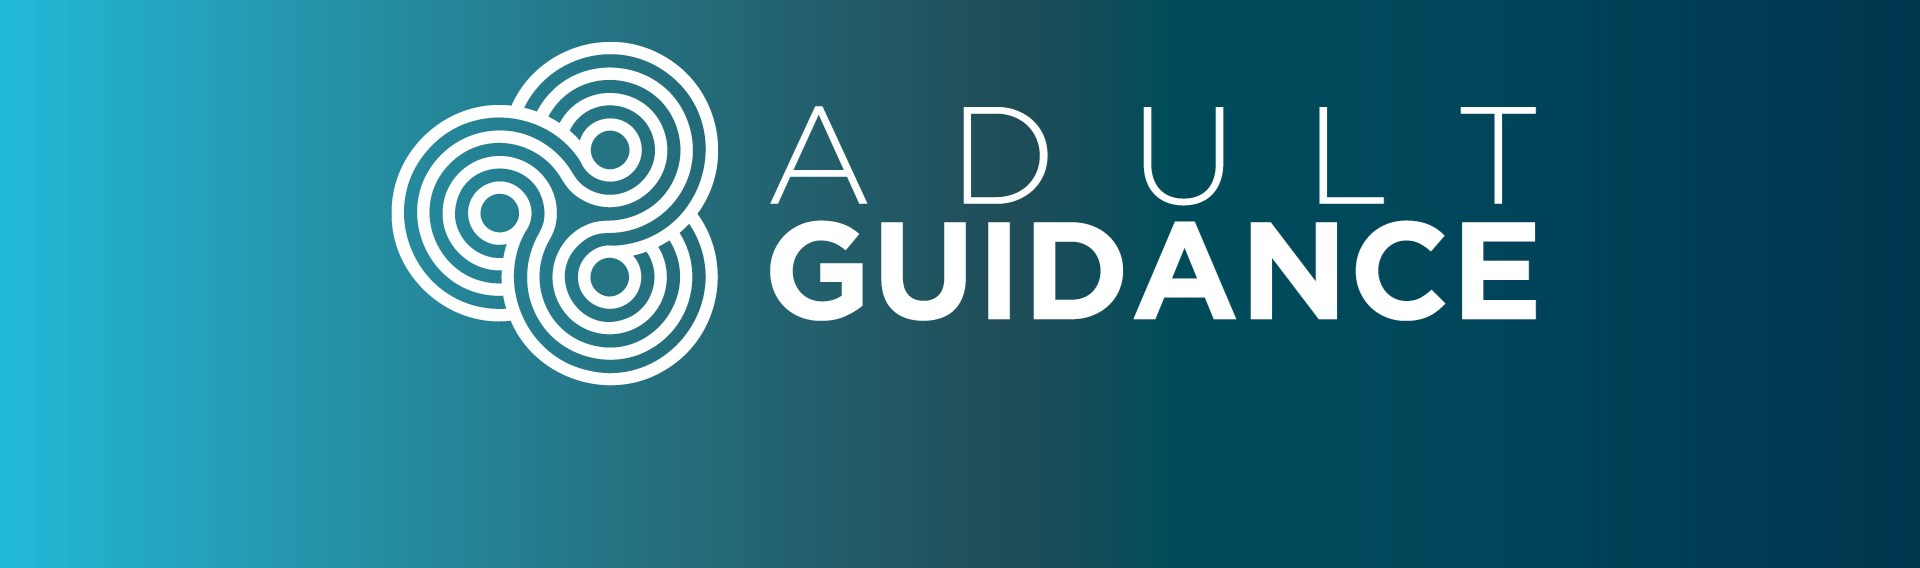 Adult Guidance